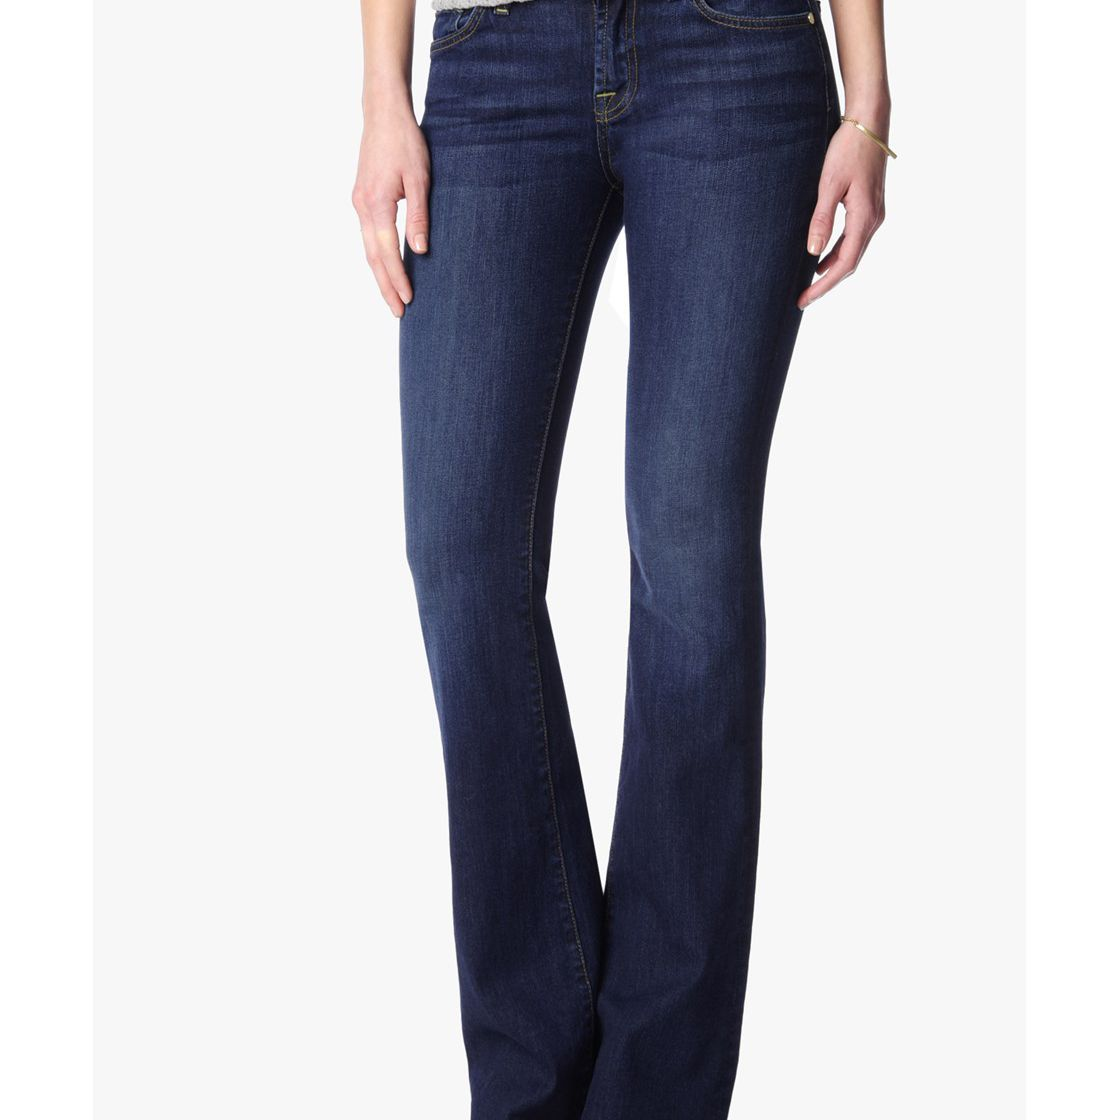 7 for All Mankind Tailorless Short Inseam Jeans